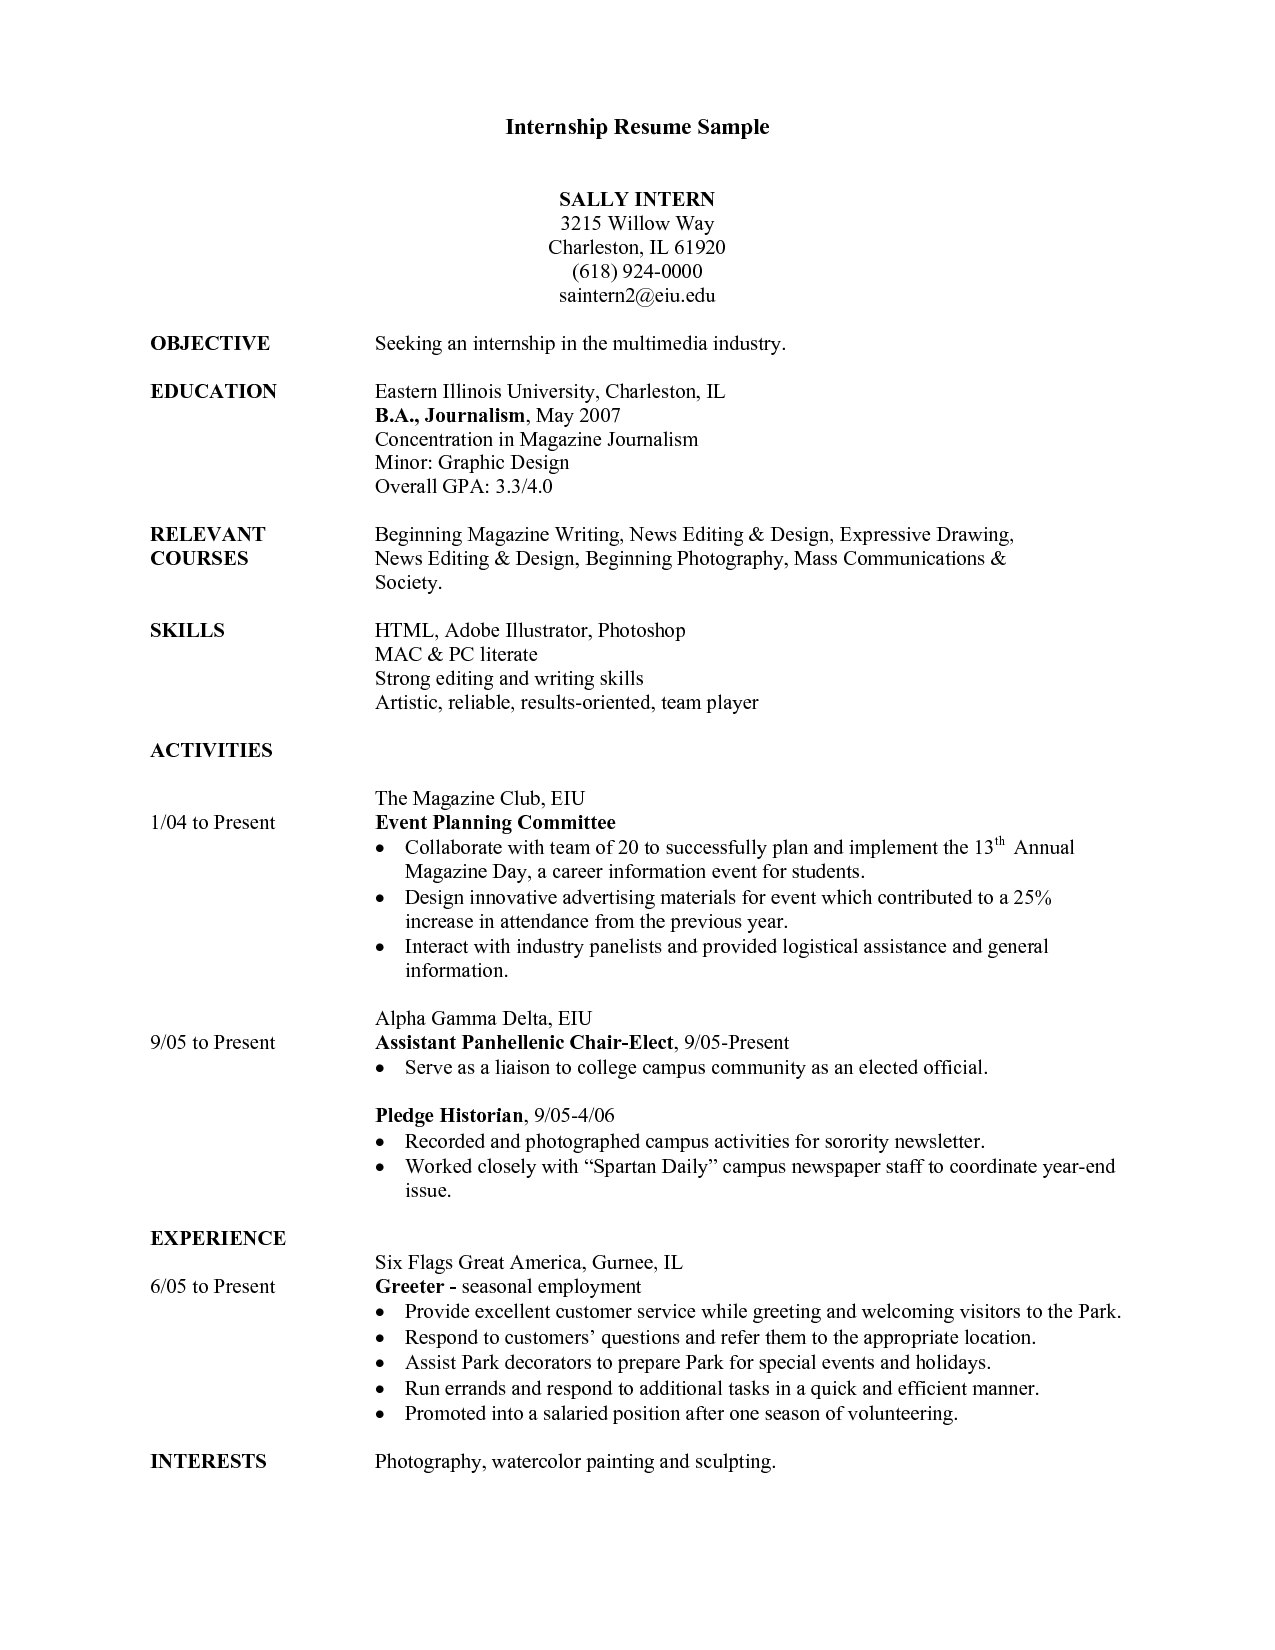 Internship Resume Sample For College Students Best Resume Examples